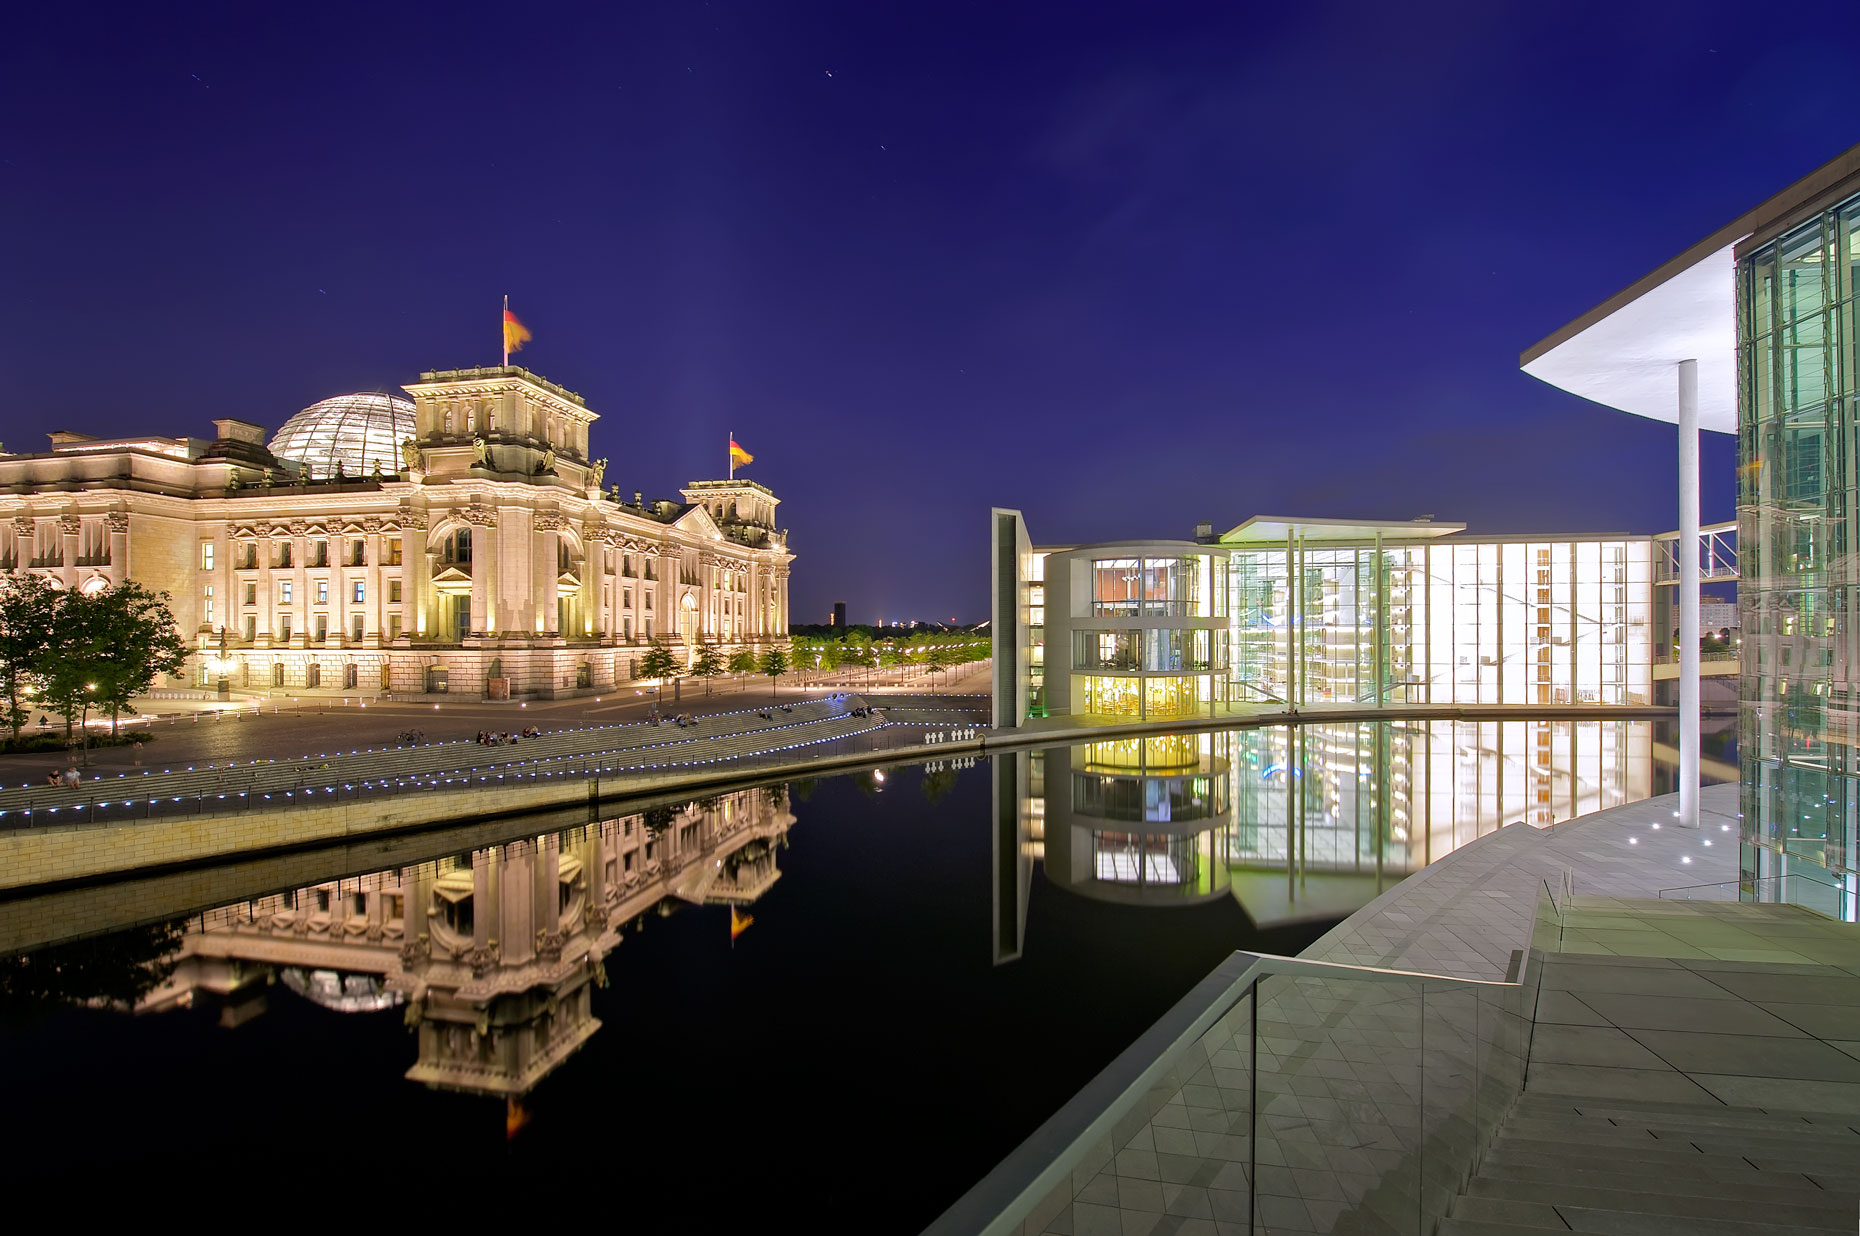 Berlin_Reichstag_Paul-Loebe-Building-60.jpg